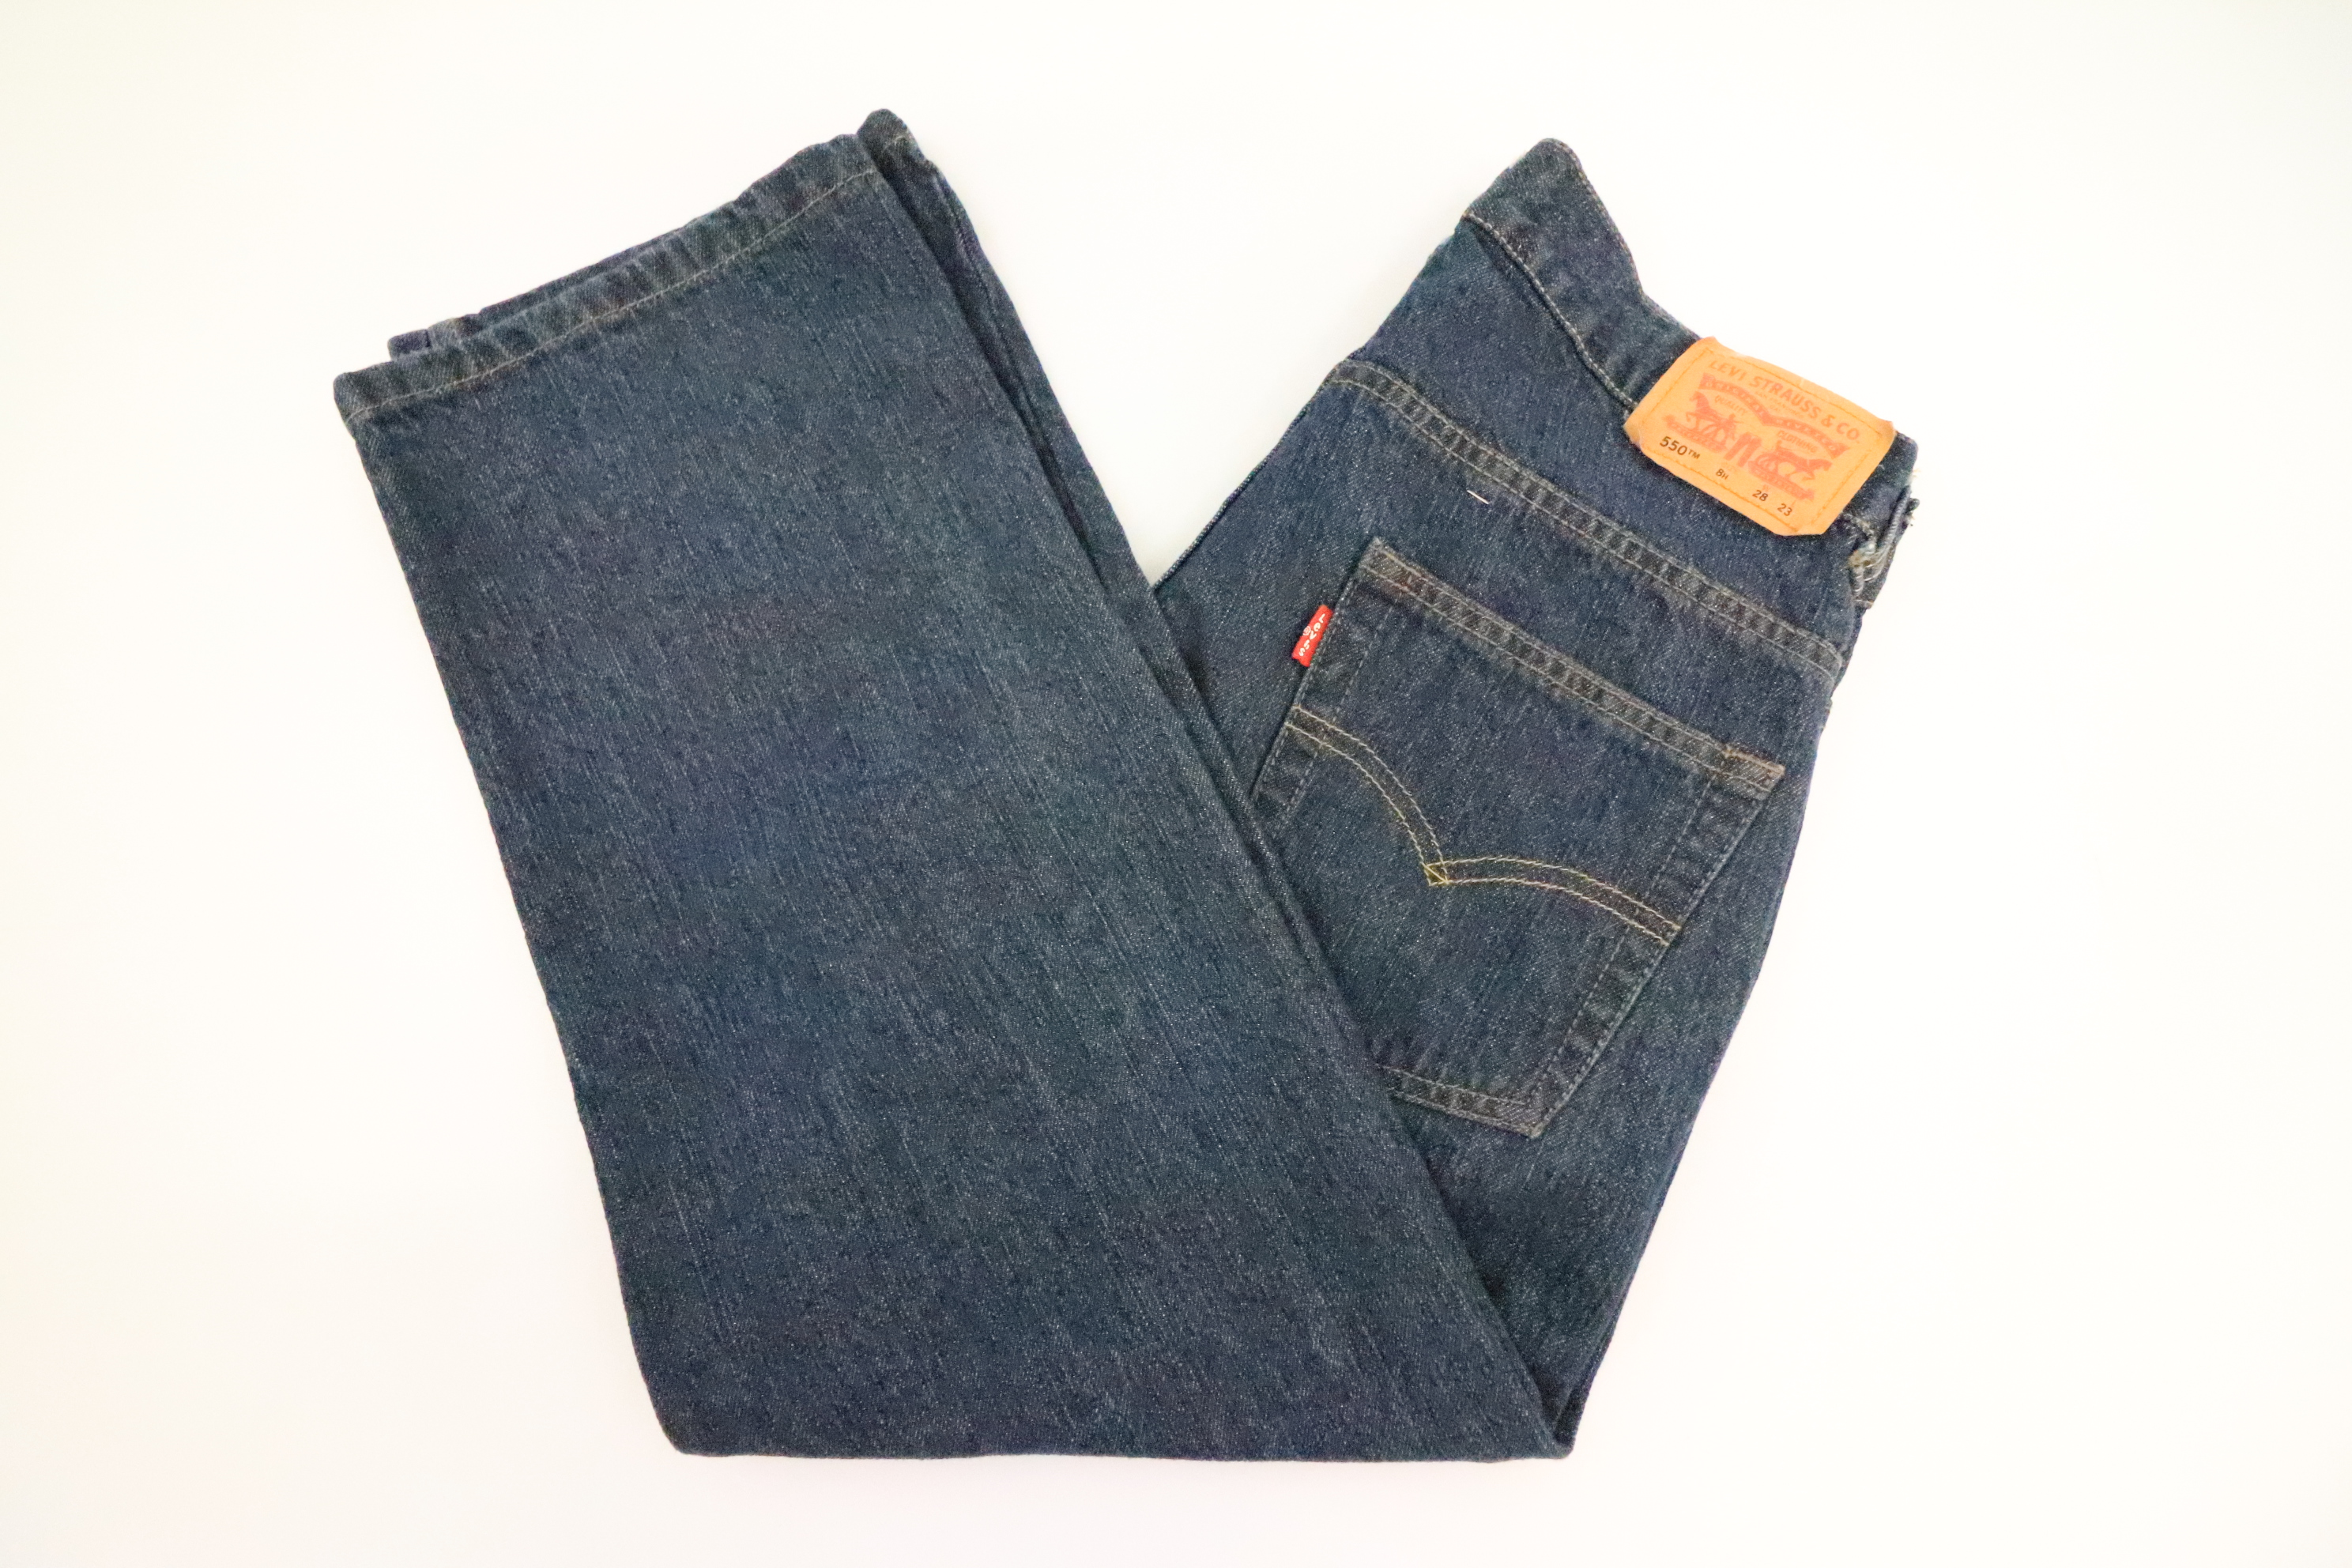 9f5801c3ff2578 Levis 550 Relaxed Tapered Fit Boys Dark Wash Jeans Size 8 Husky 28 x 23